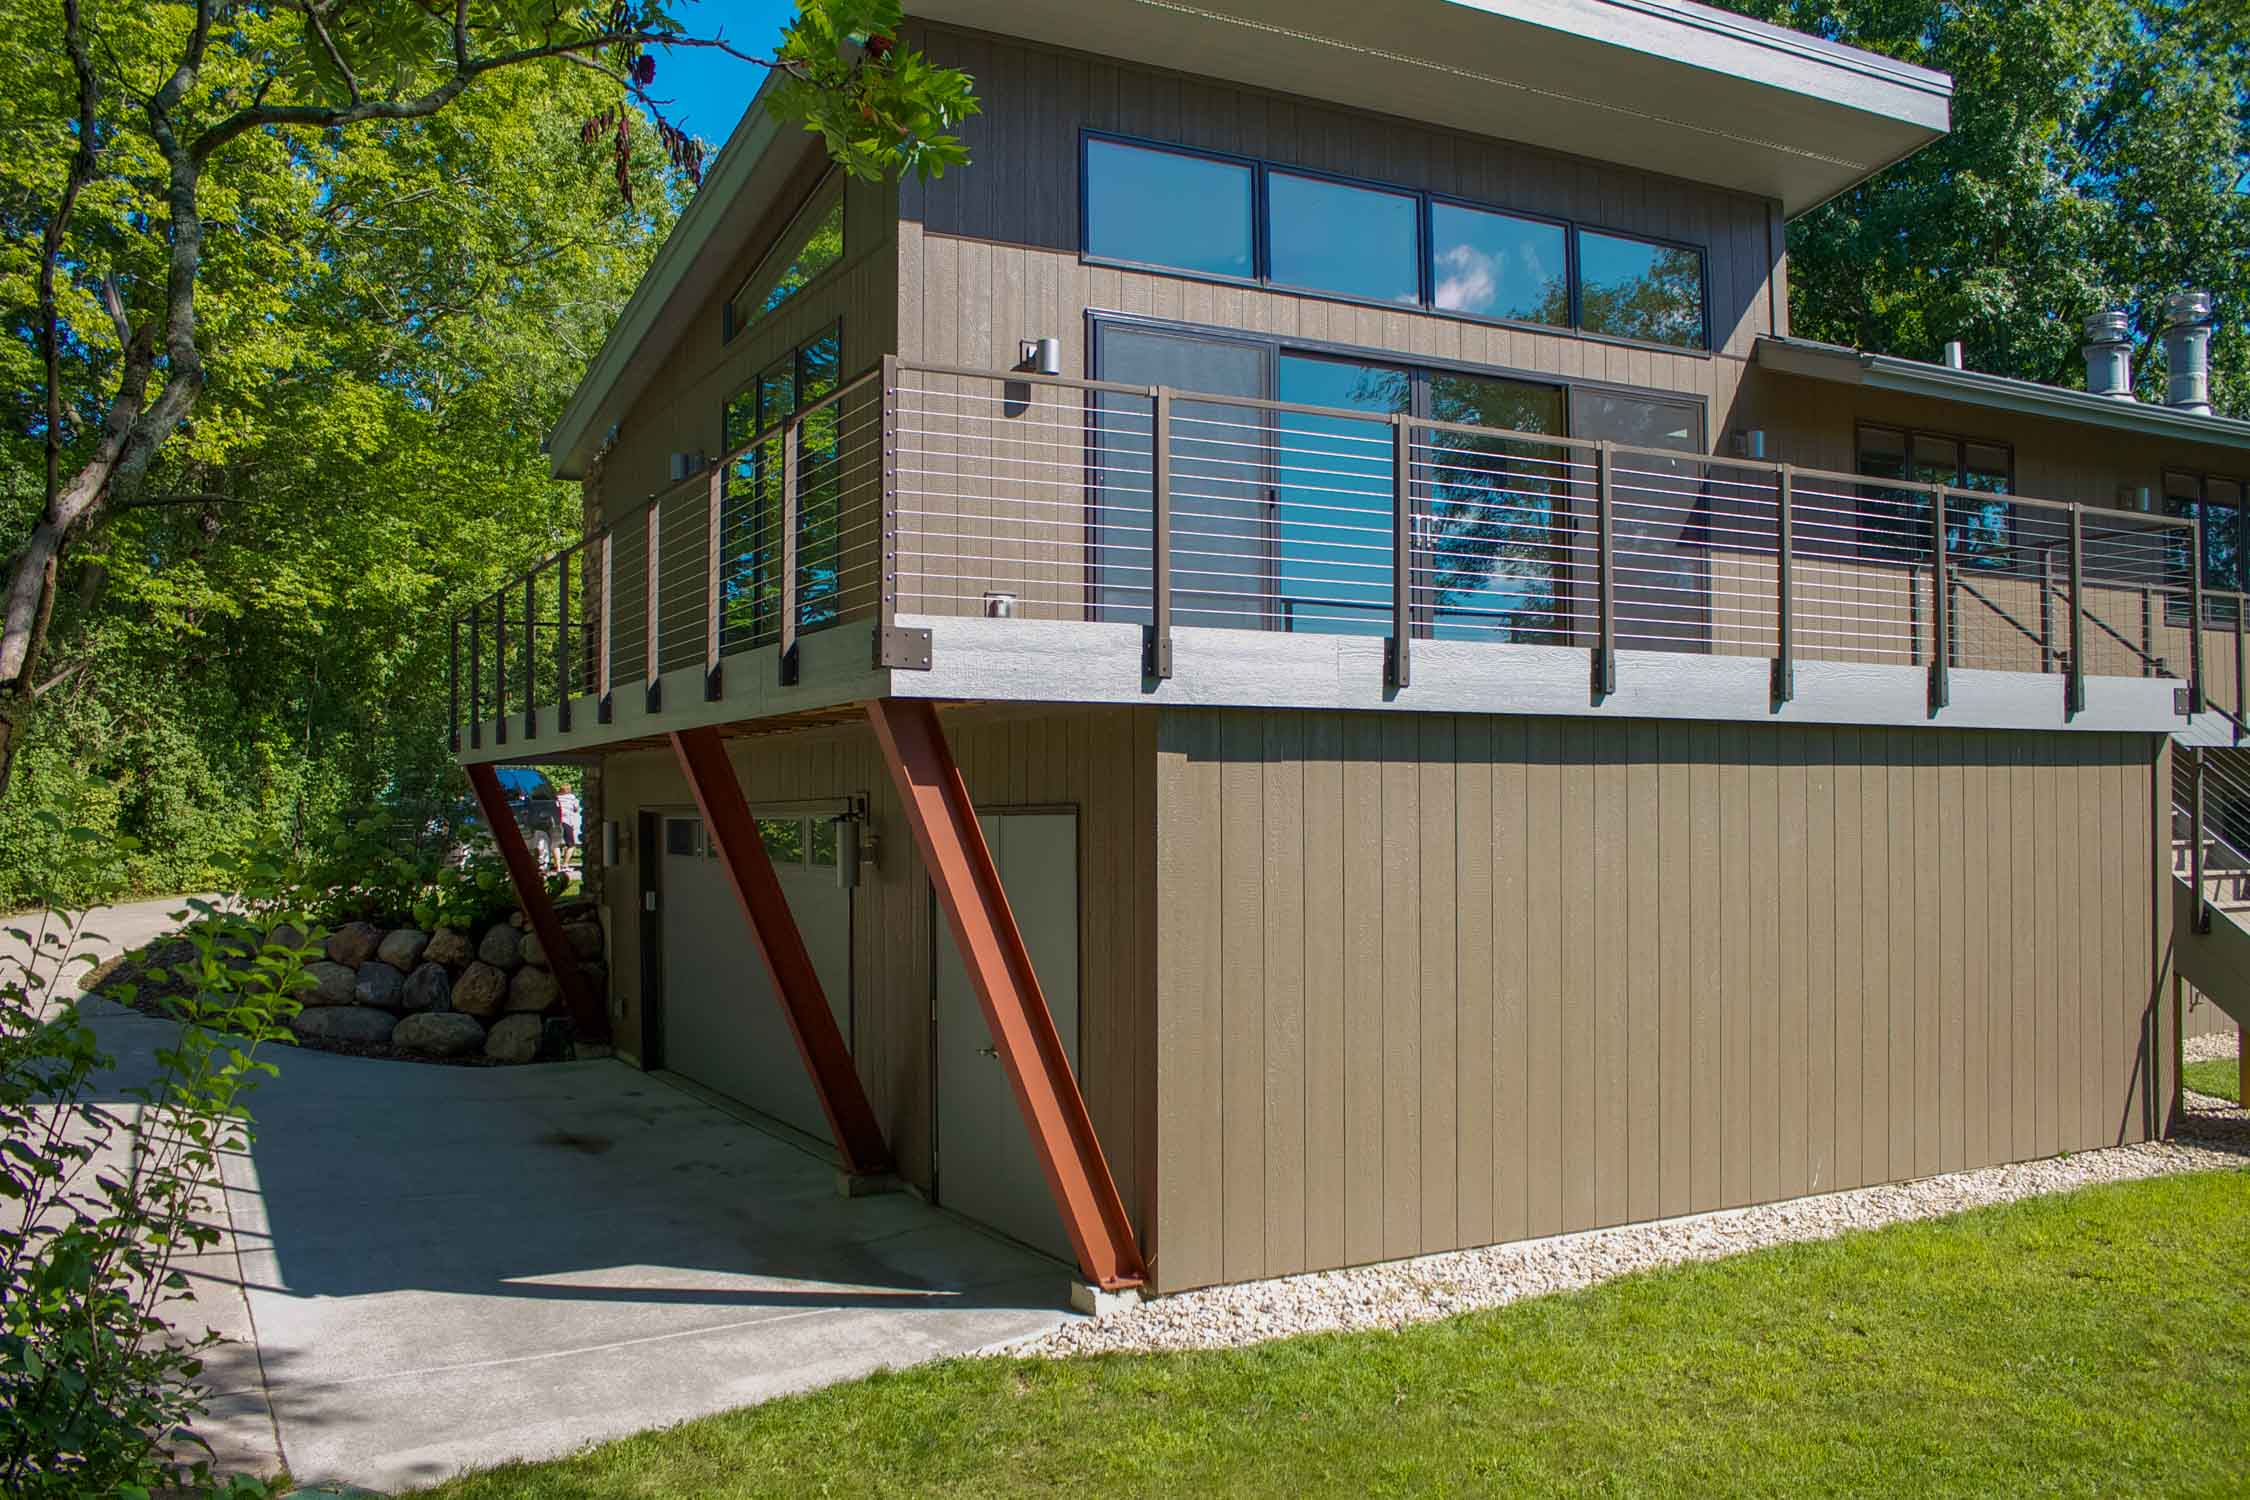 - This home in Westport, WI was updated with a garage addition. A split-entry or bi-level home, it was transformed to a contemporary masterpiece with large windows and extensive decks to take advantage of views.